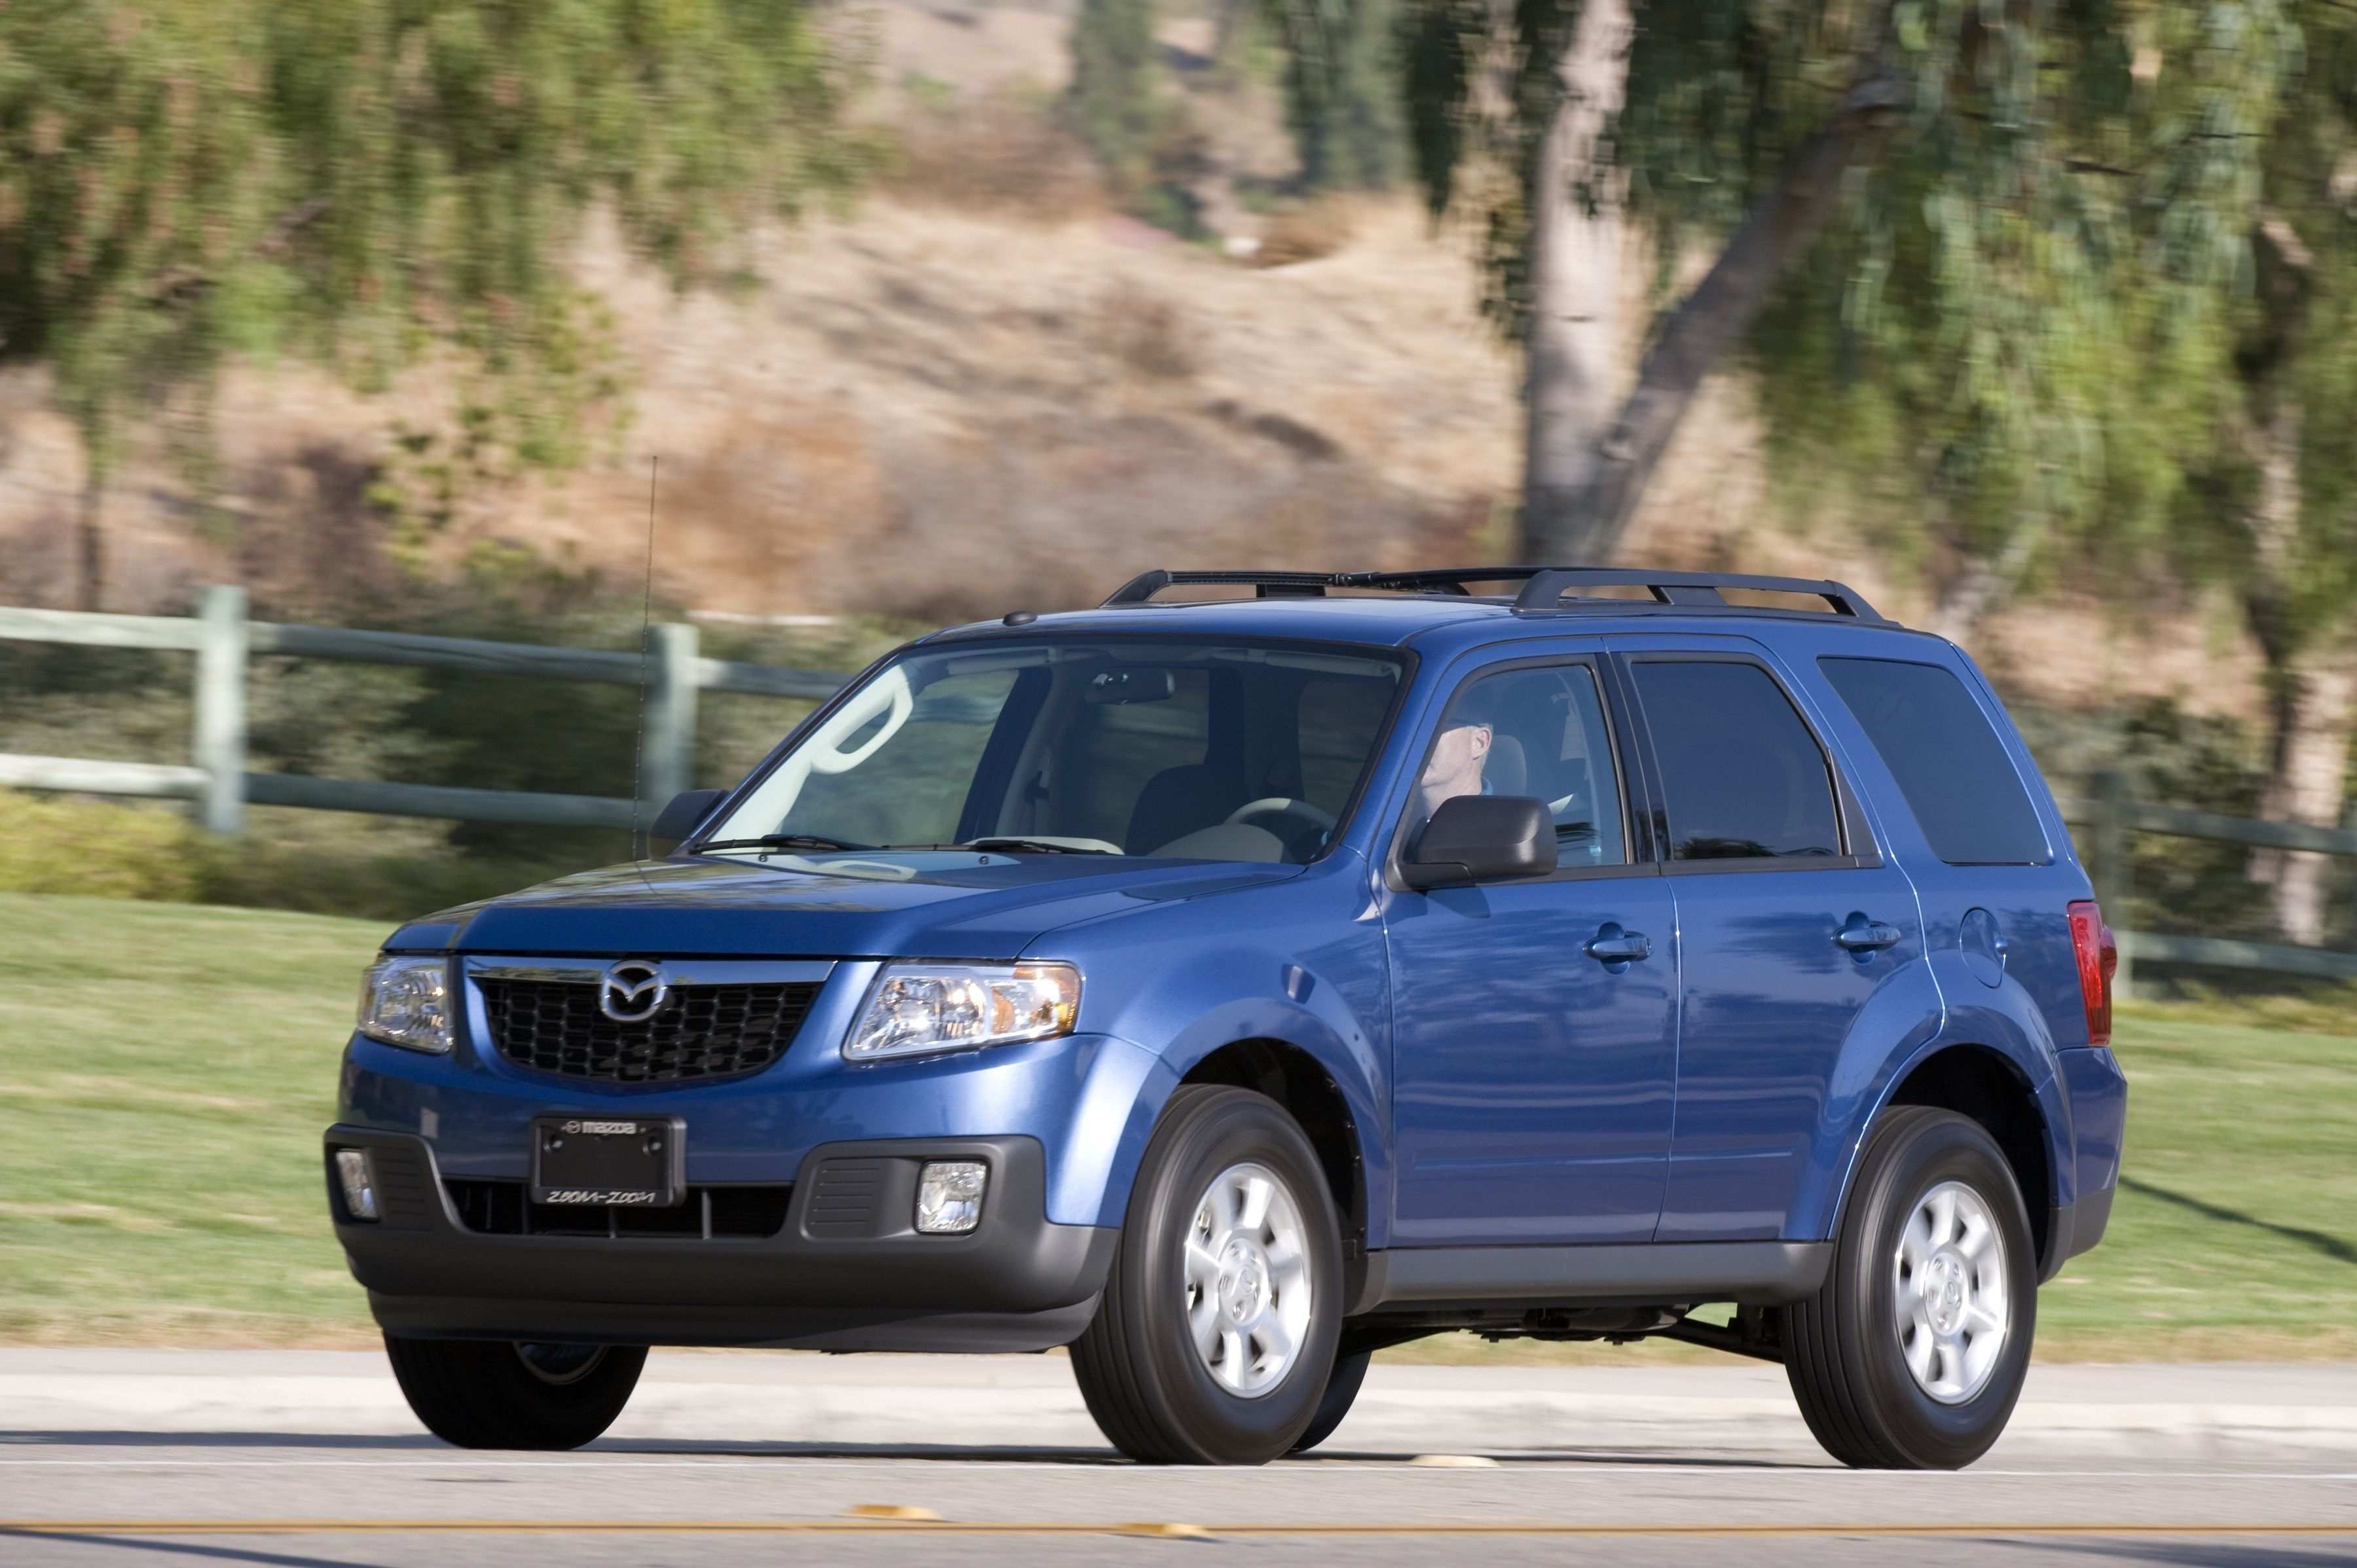 62 The Best 2019 Mazda Tribute New Concept